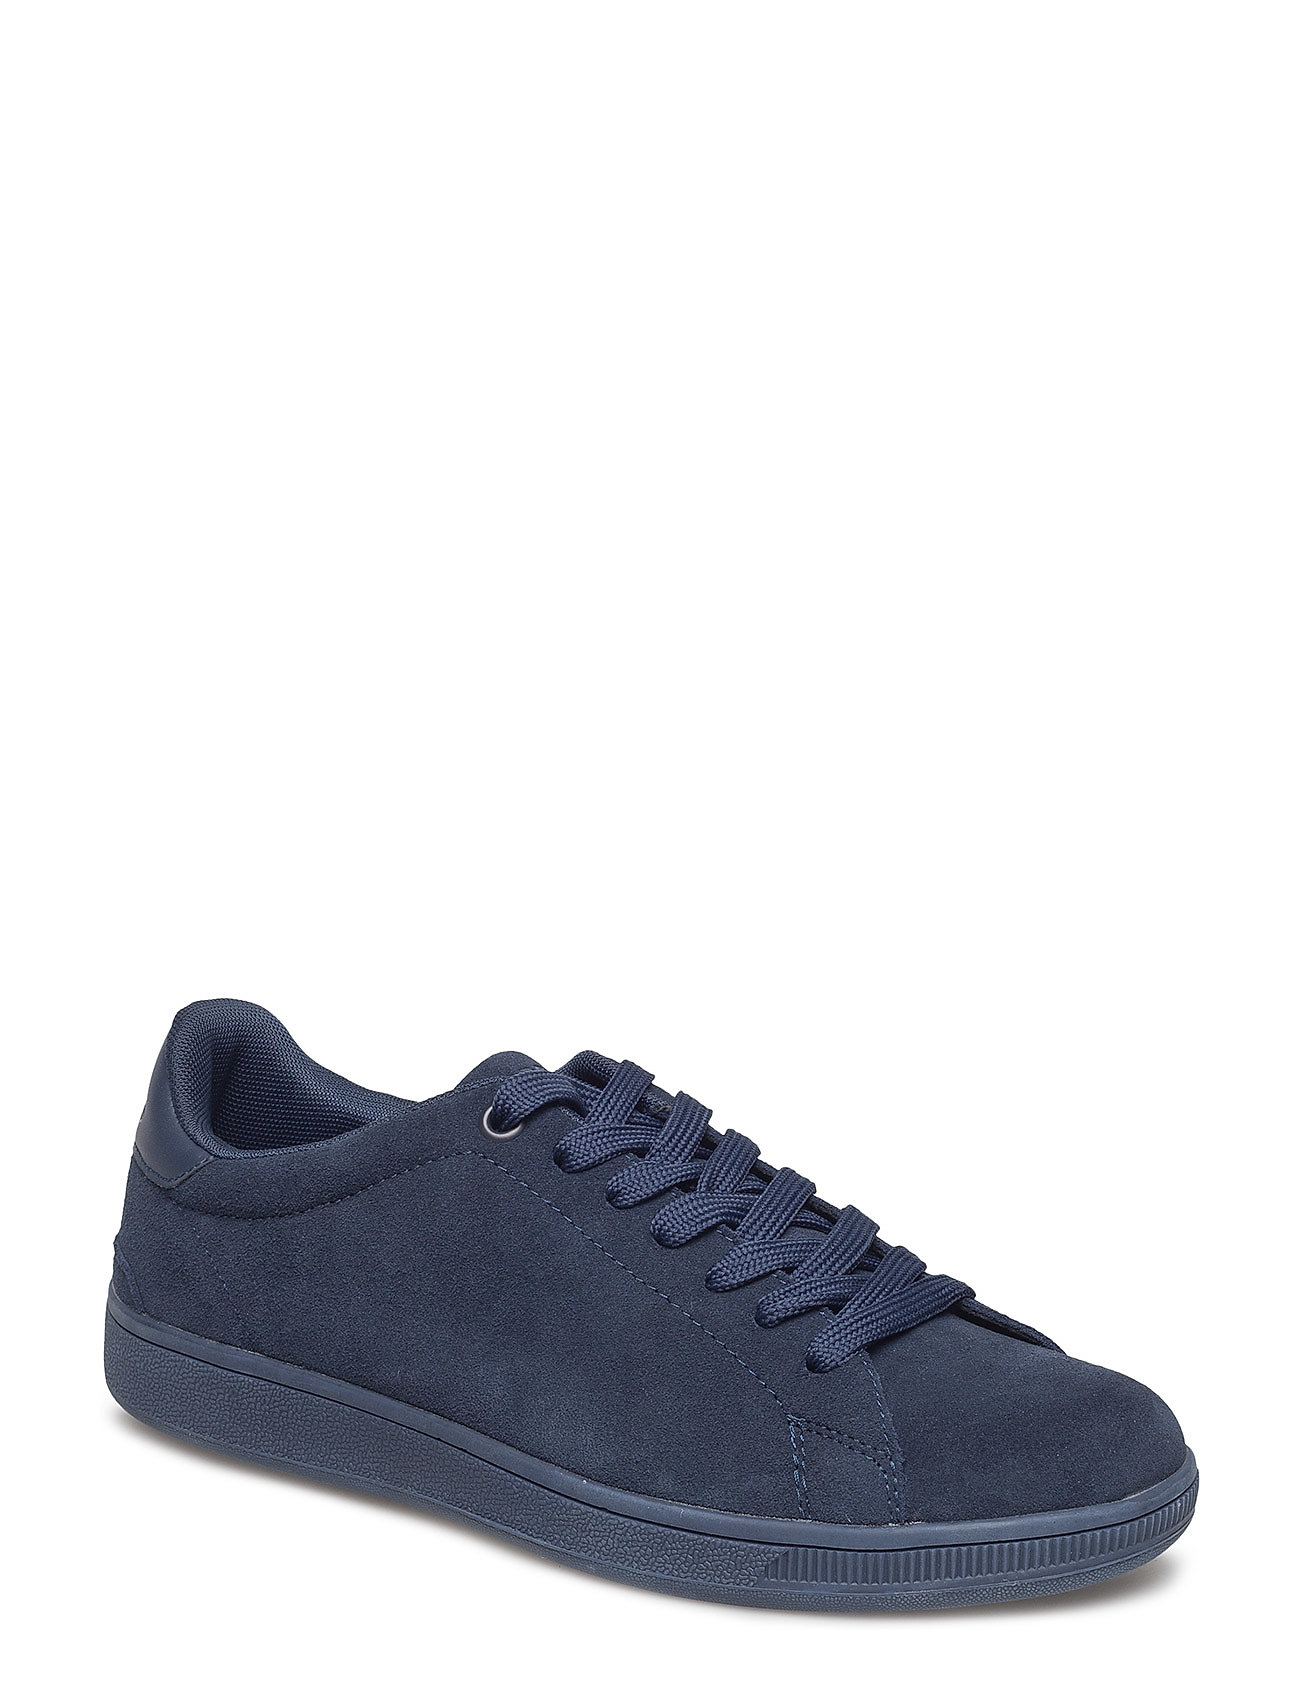 7b682f9cfca Superdry Sleek Tennis Low Premium (Navy dark Navy)